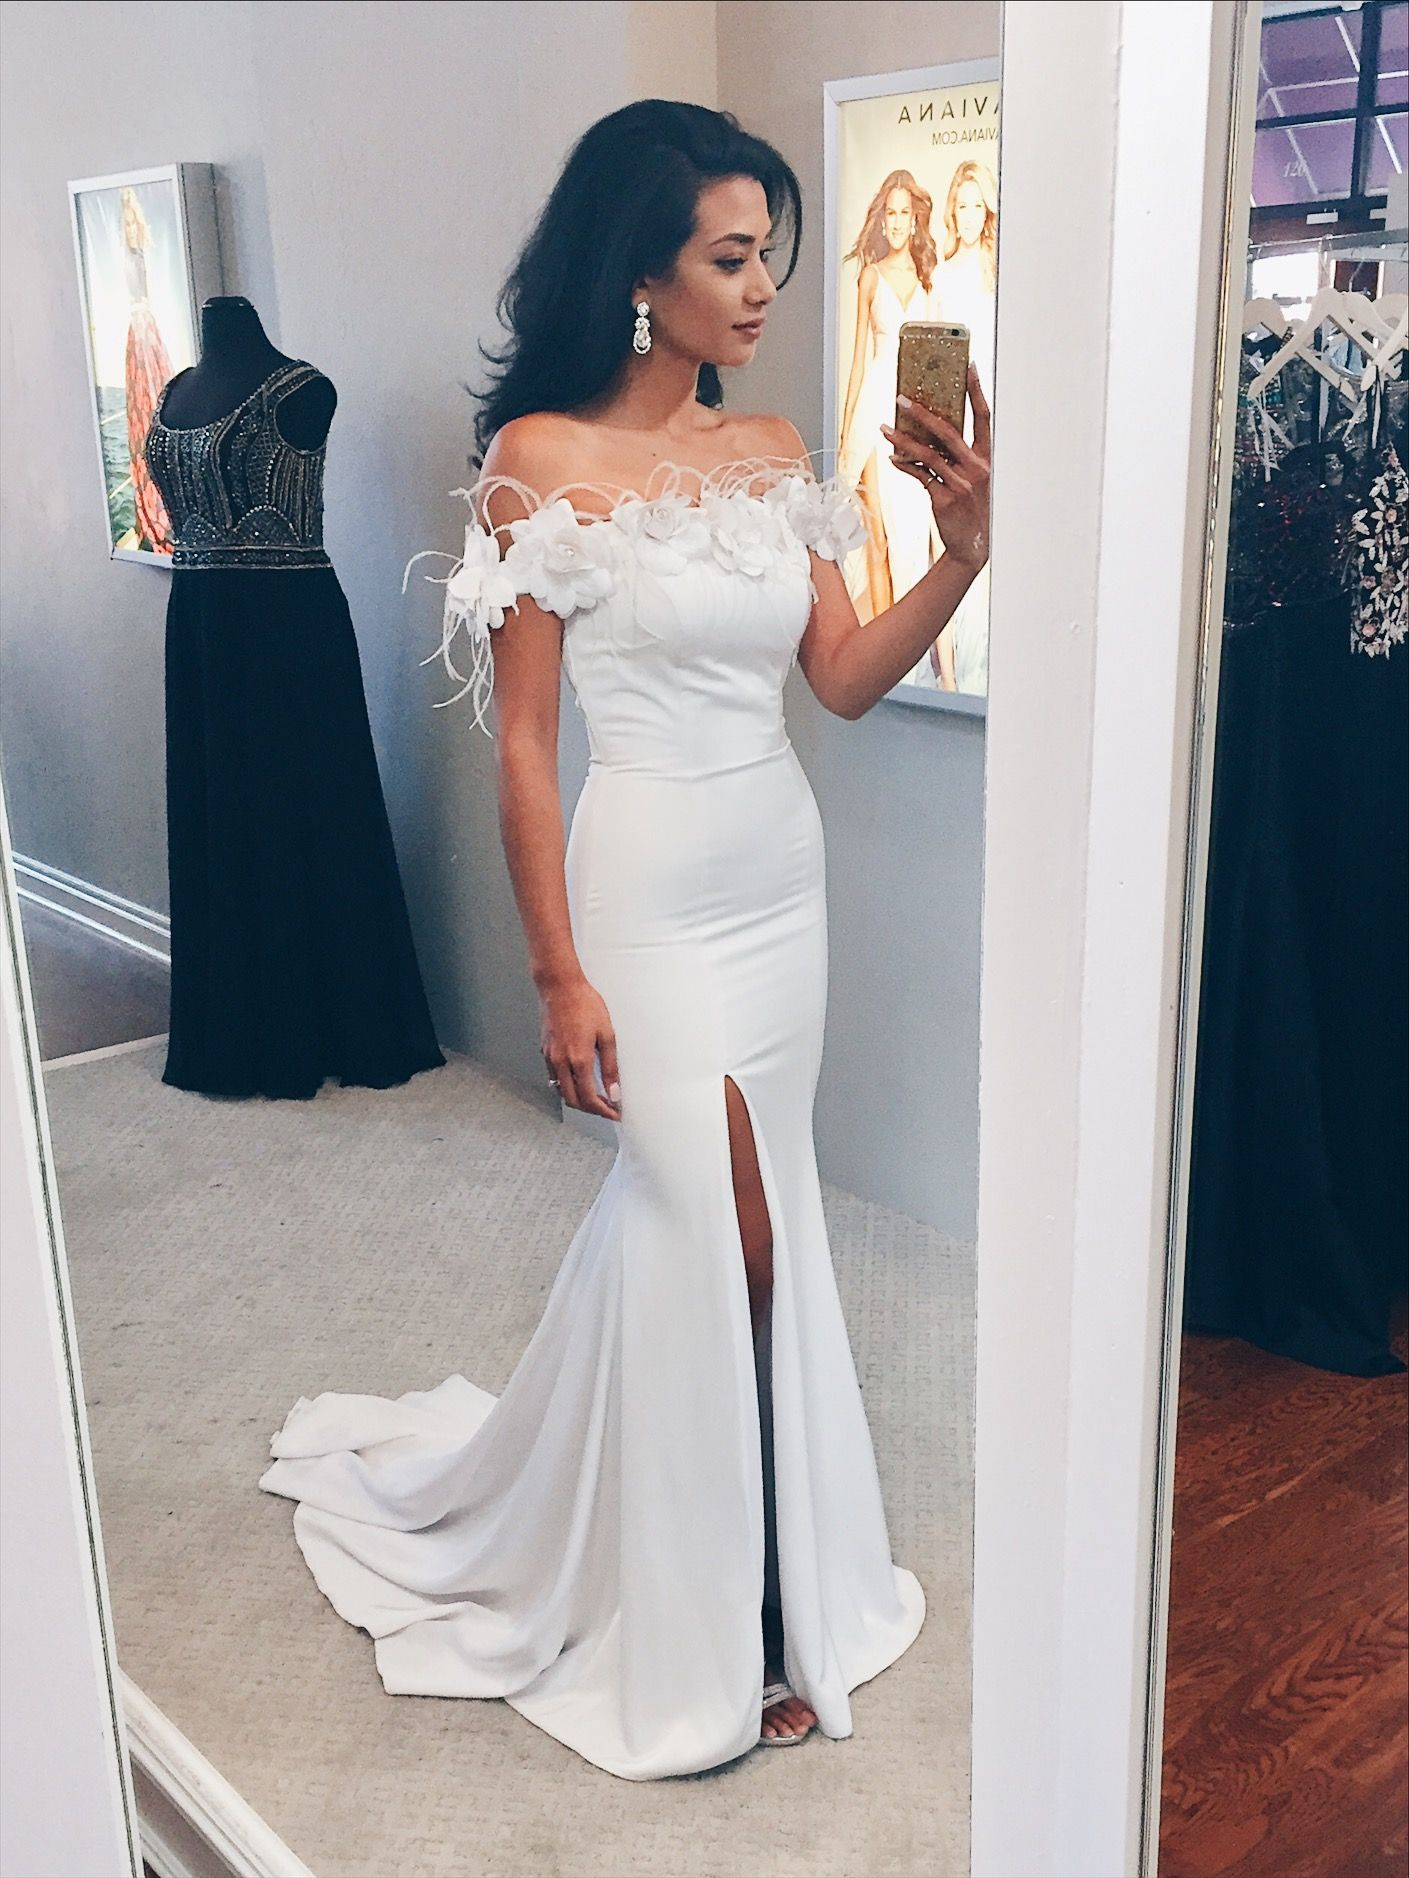 Wedding renewal gown white off shoulder mermaid dress with train